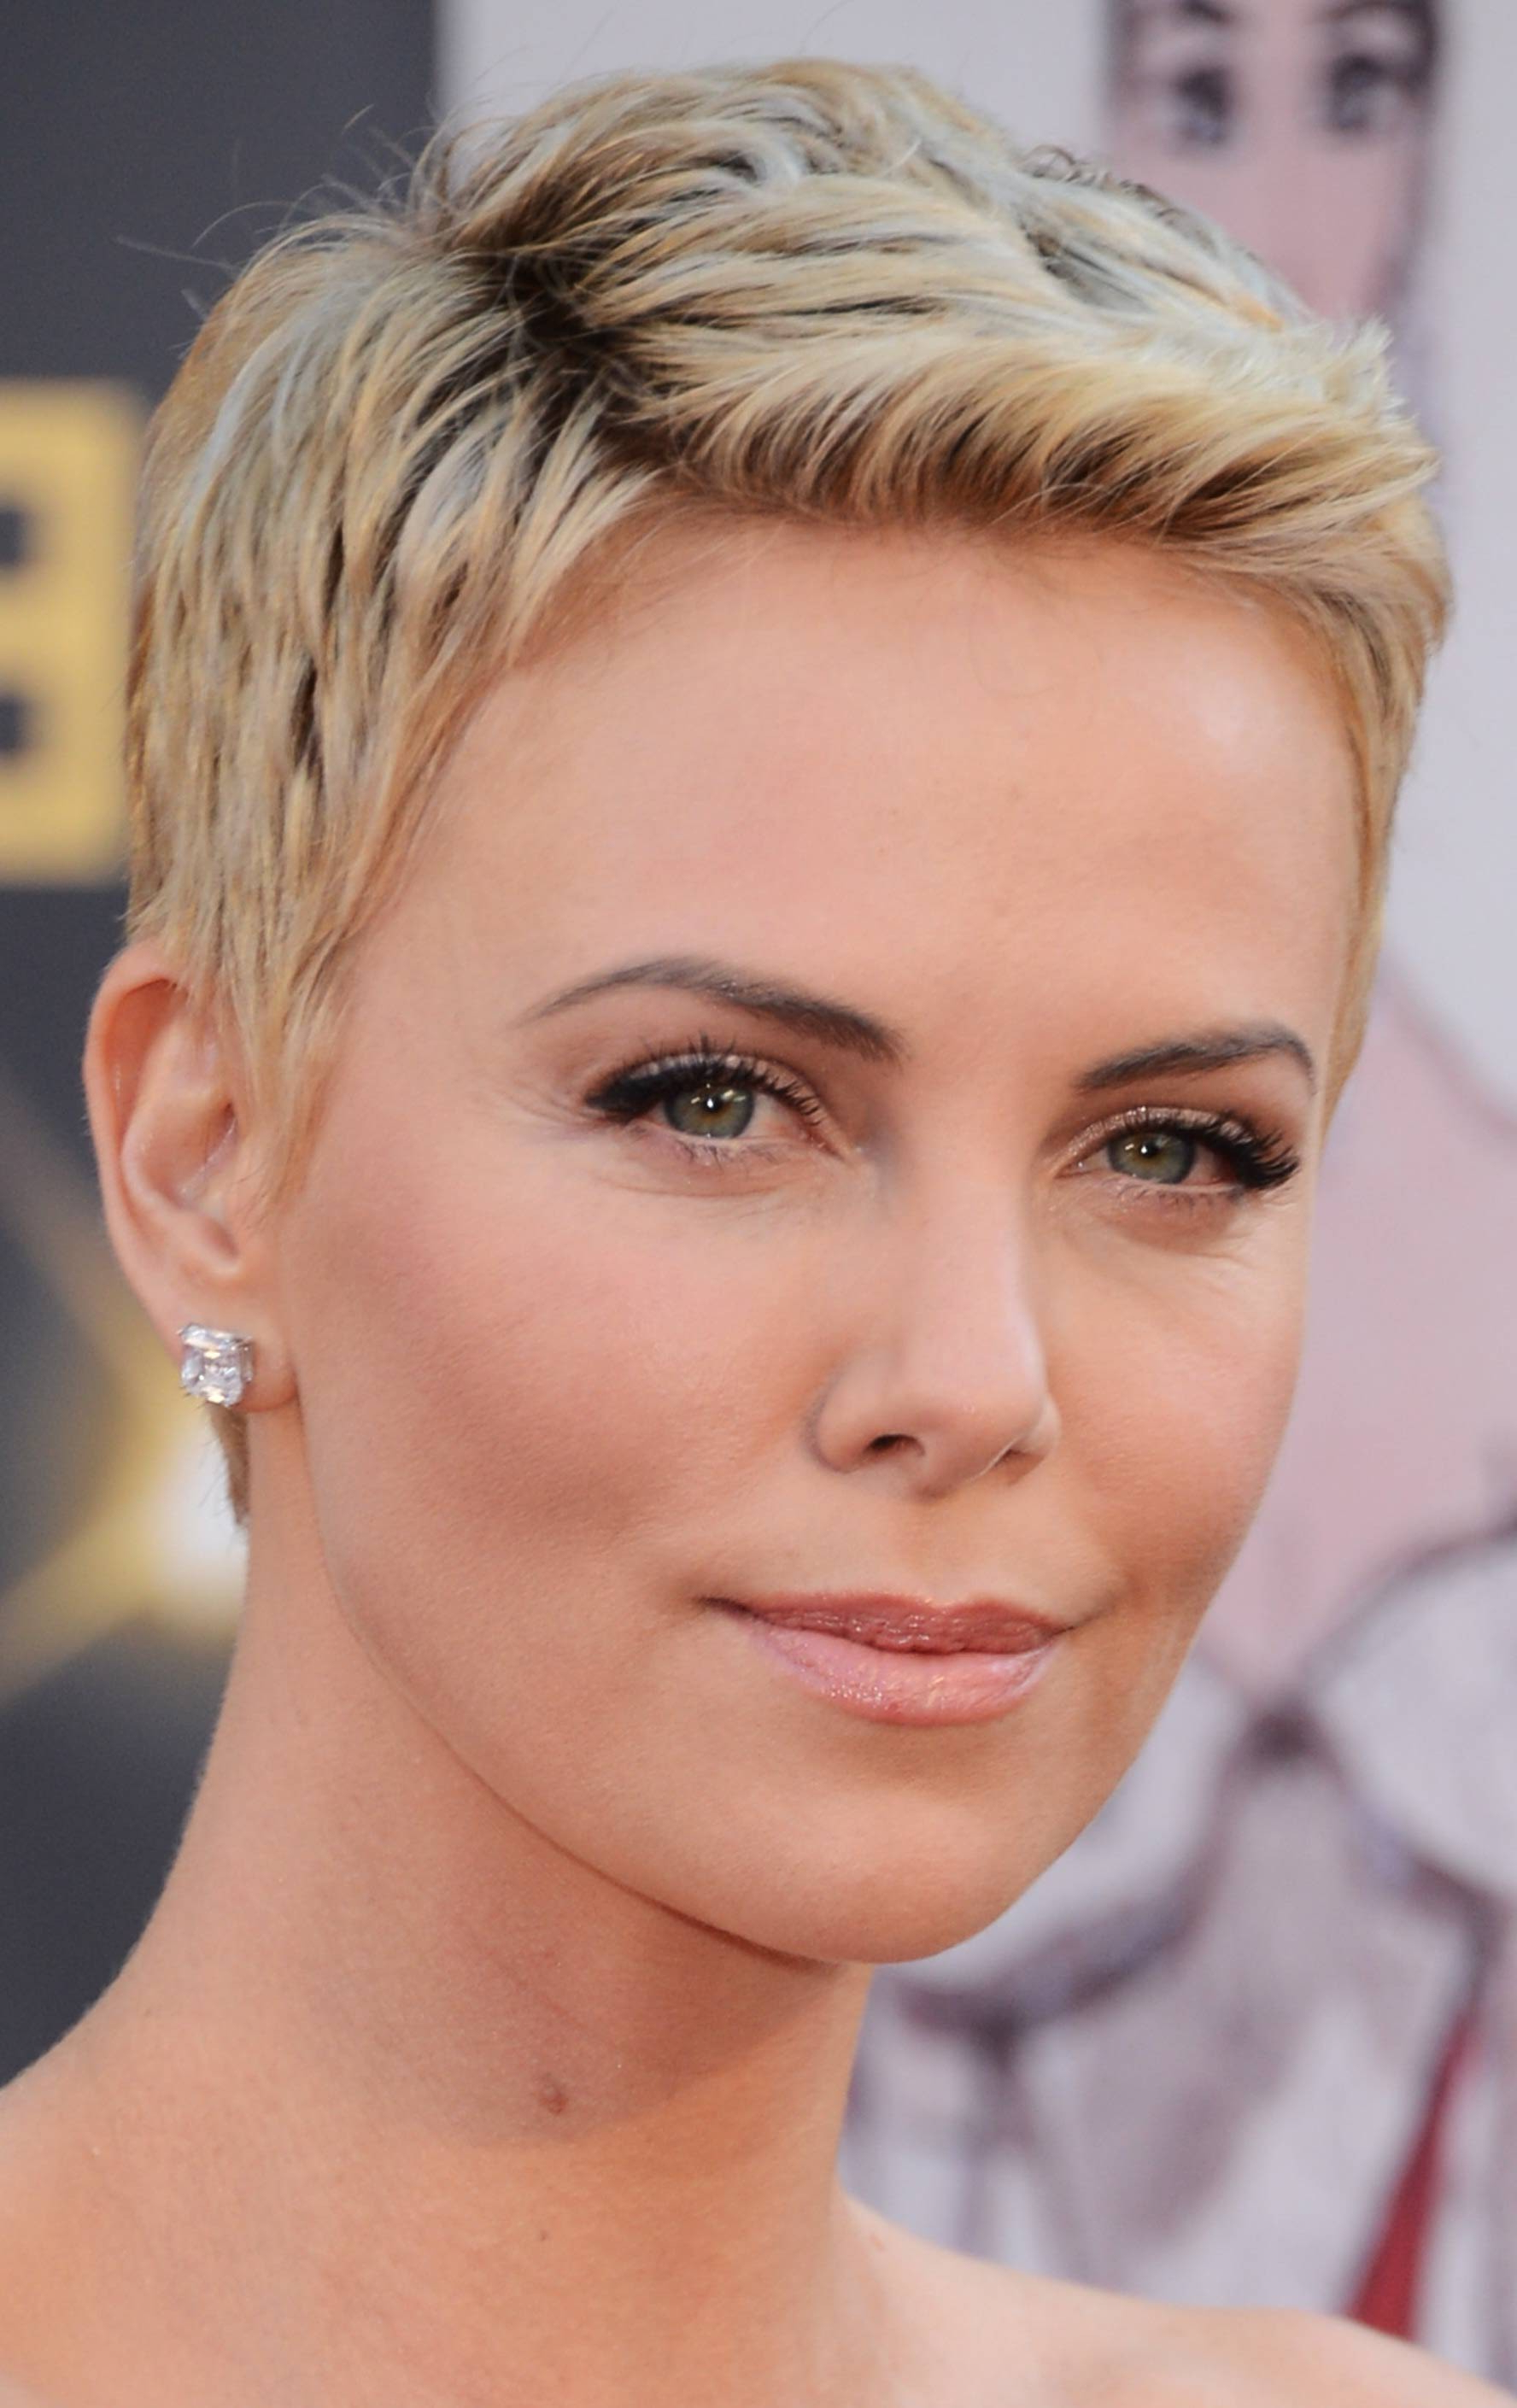 Short Hairstyles For Thick Hair And Round Faces Pinterest Short For Short Haircuts For Round Faces And Thick Hair (View 25 of 25)